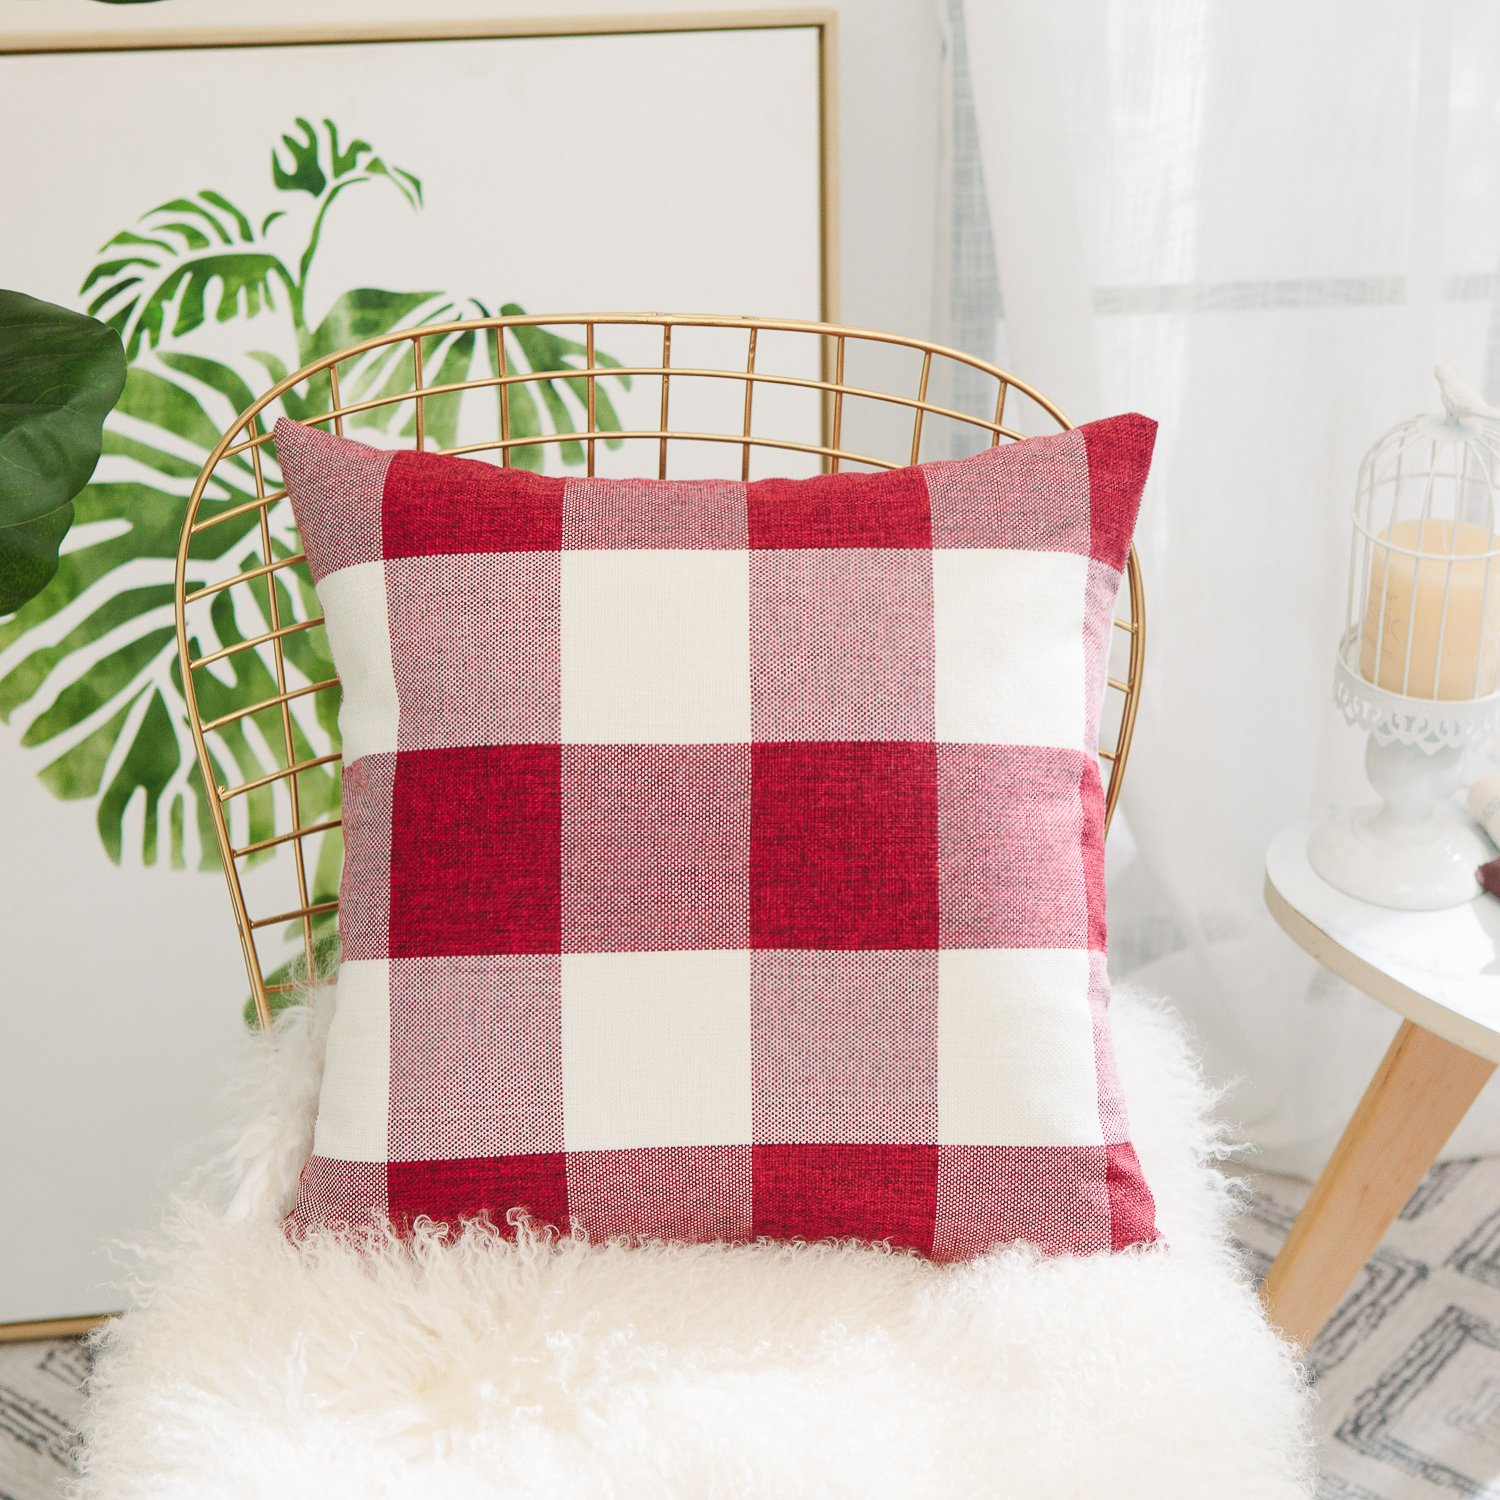 HOME BRILLIANT Classic Retro Throw Pillow Covers Country Rustic Checkered Plaid Cotton Linen Cushion Covers, Set of 2, 18 x 18 Inches, Beige HBGZH101